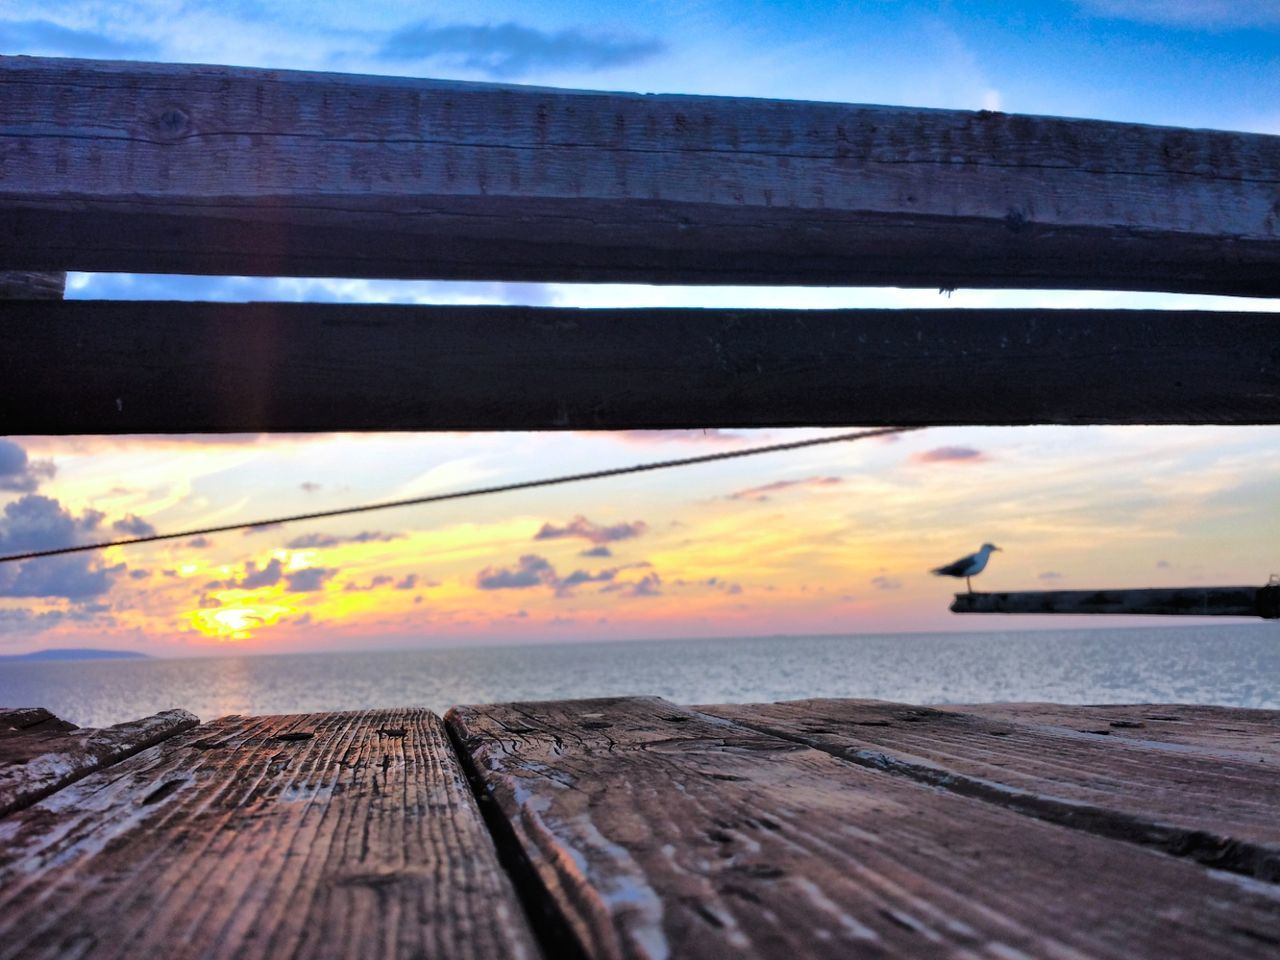 wood - material, sky, cloud - sky, sunset, outdoors, nature, no people, pier, tranquil scene, scenics, beauty in nature, day, water, horizon over water, sea, wood paneling